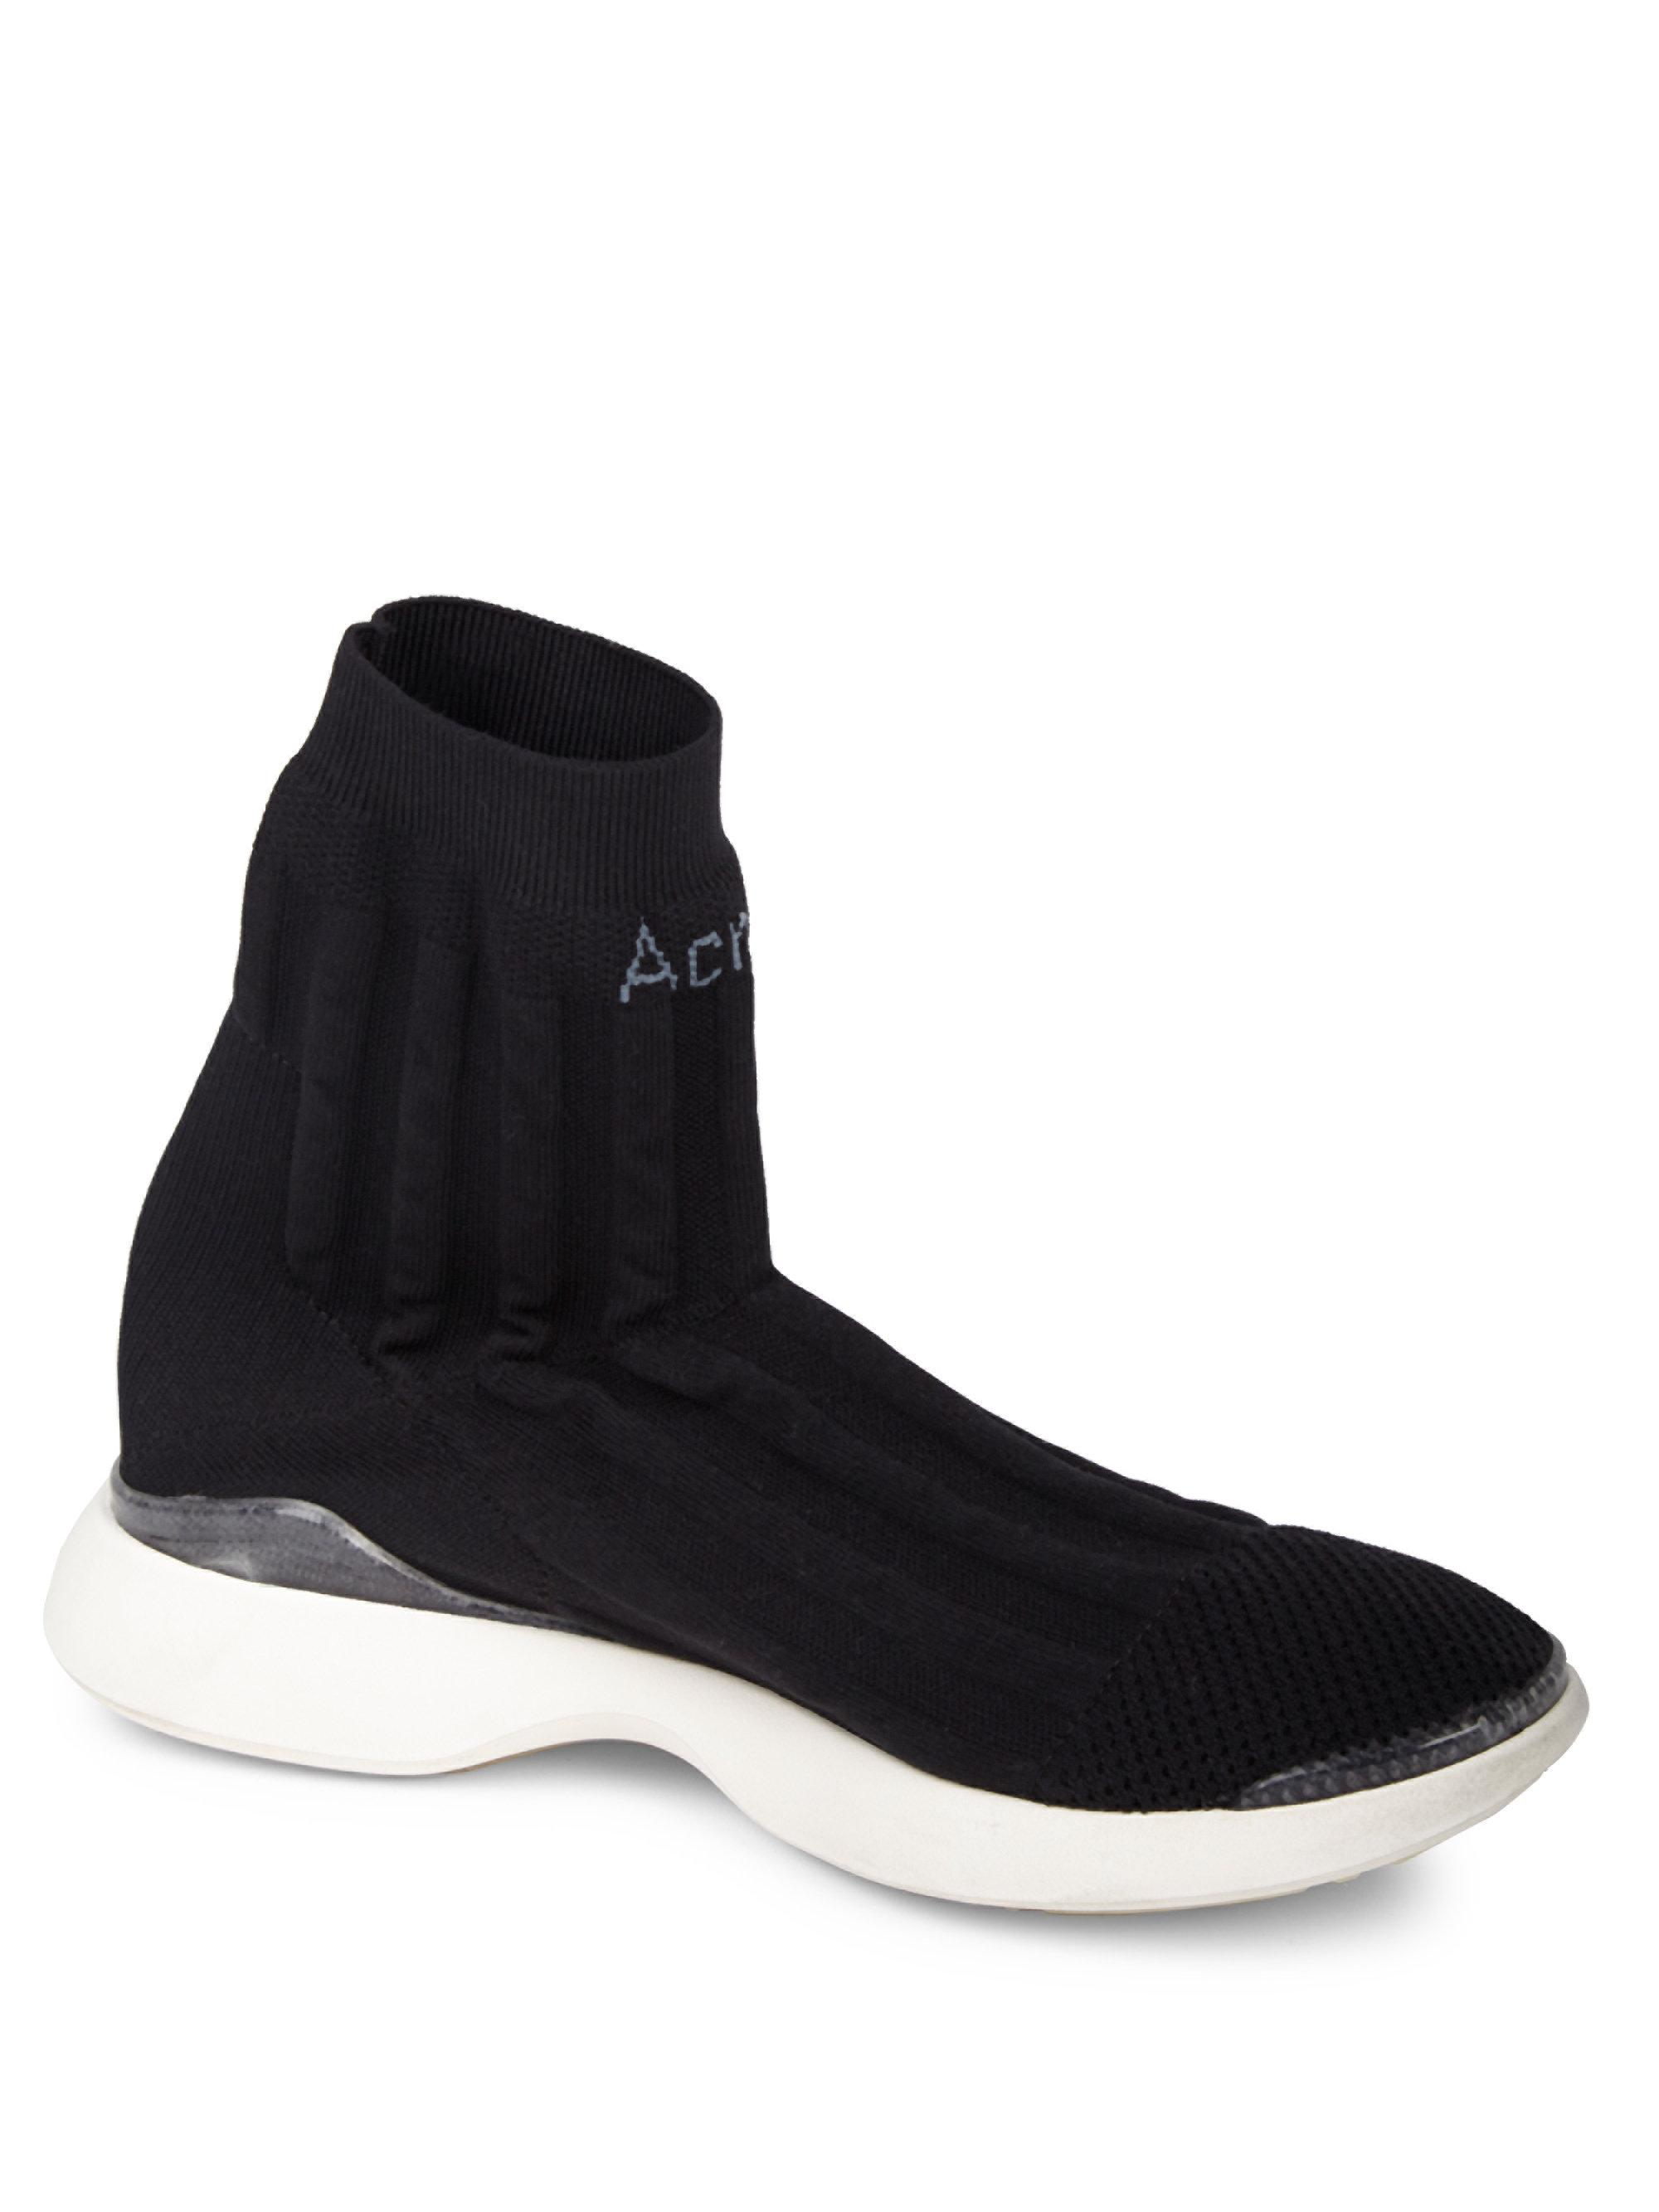 Batilda Sock Sneakers in Black Nylon Acne Studios oyygNmReQr